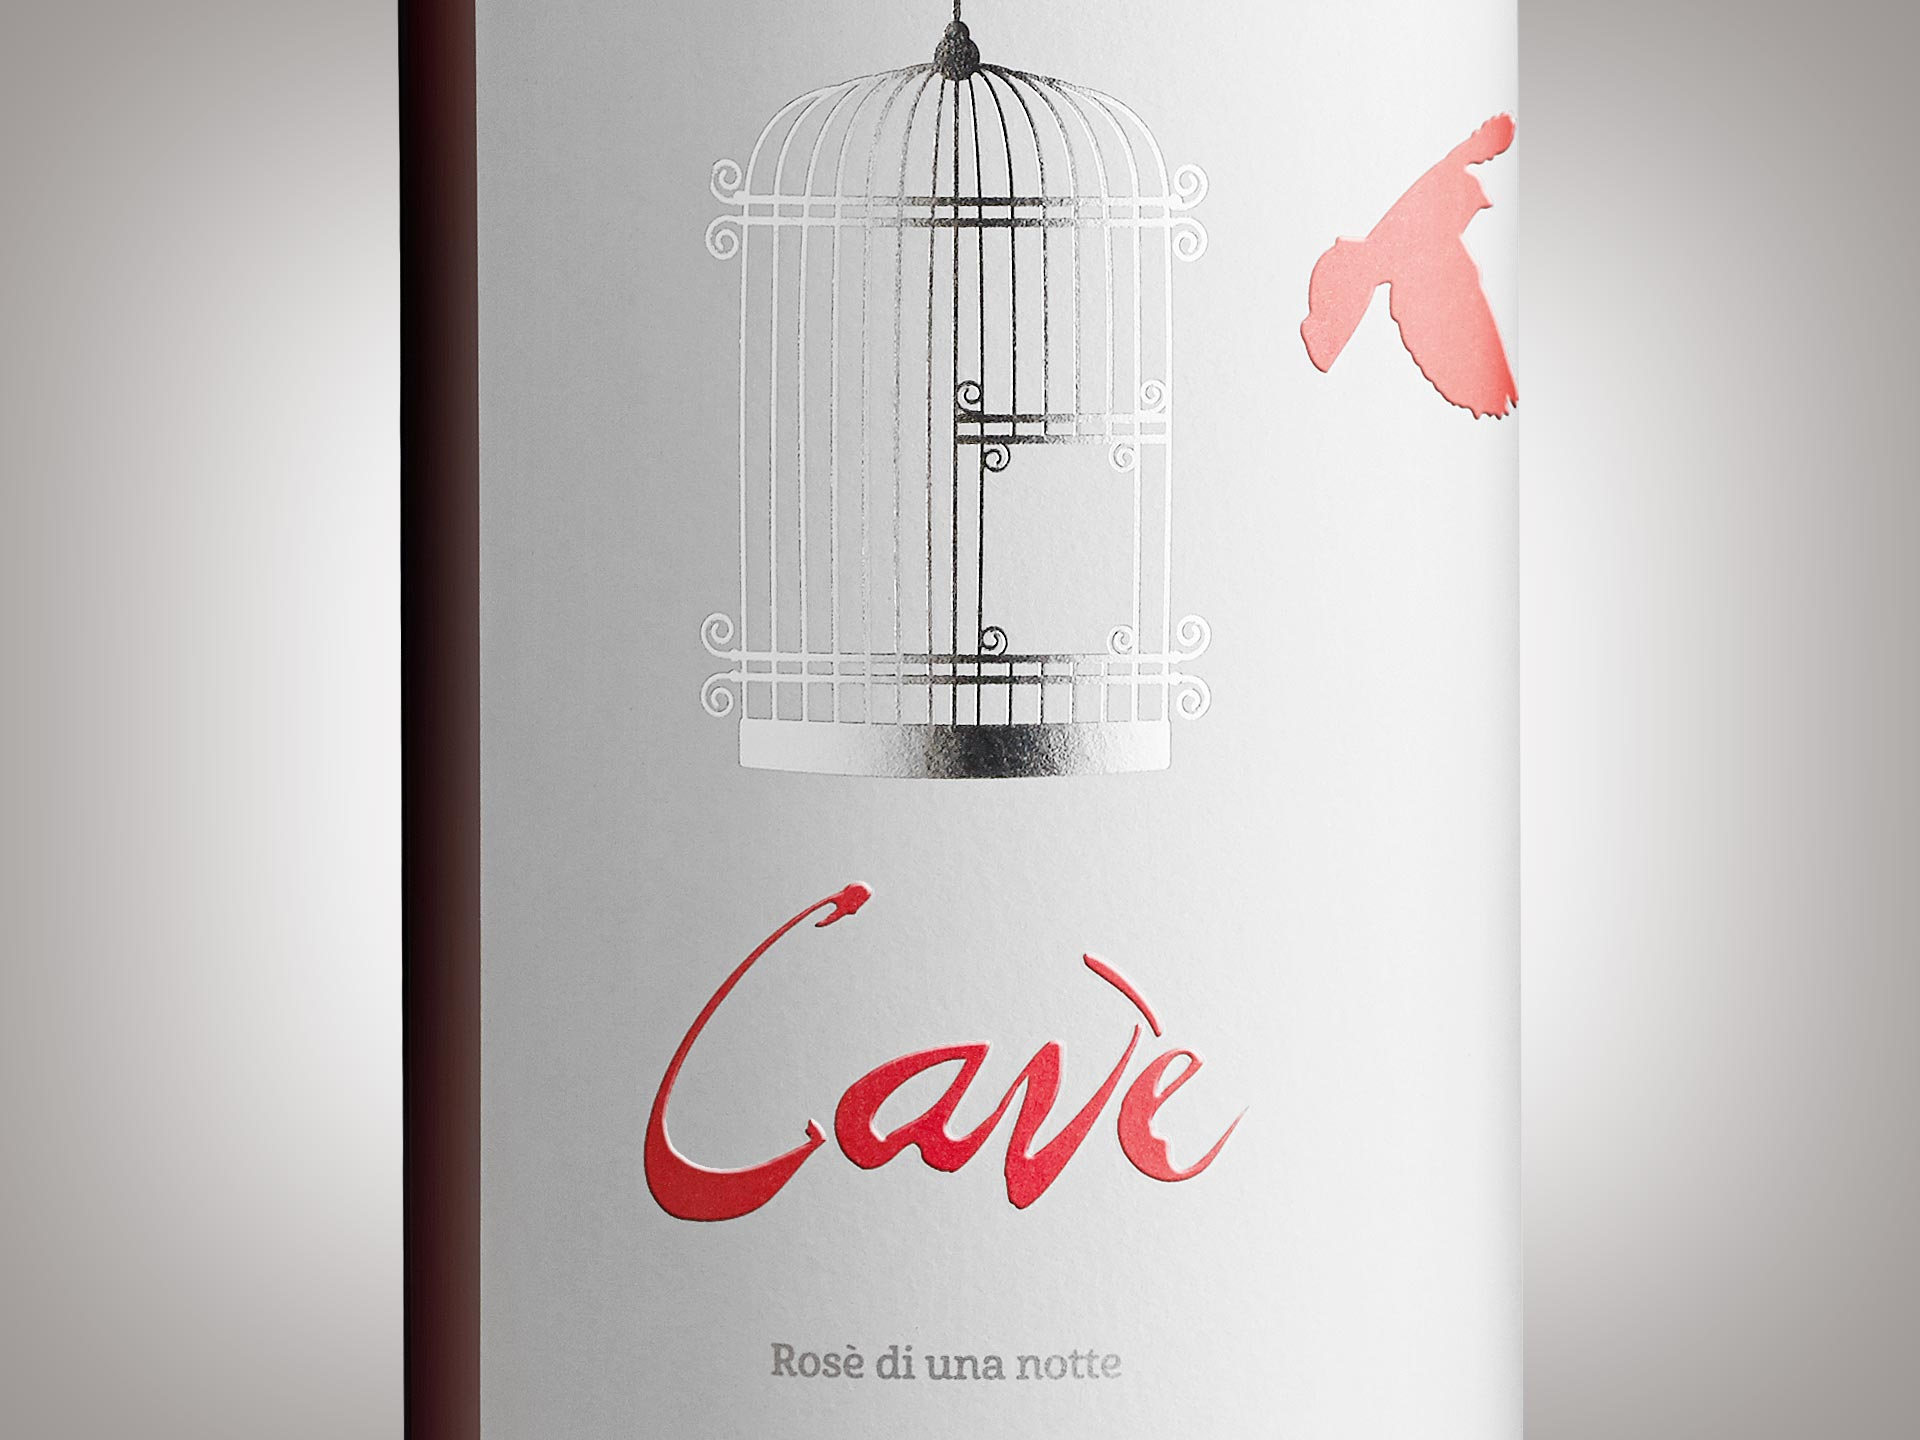 Packaging design etichetta Cavè Tenute Olbios